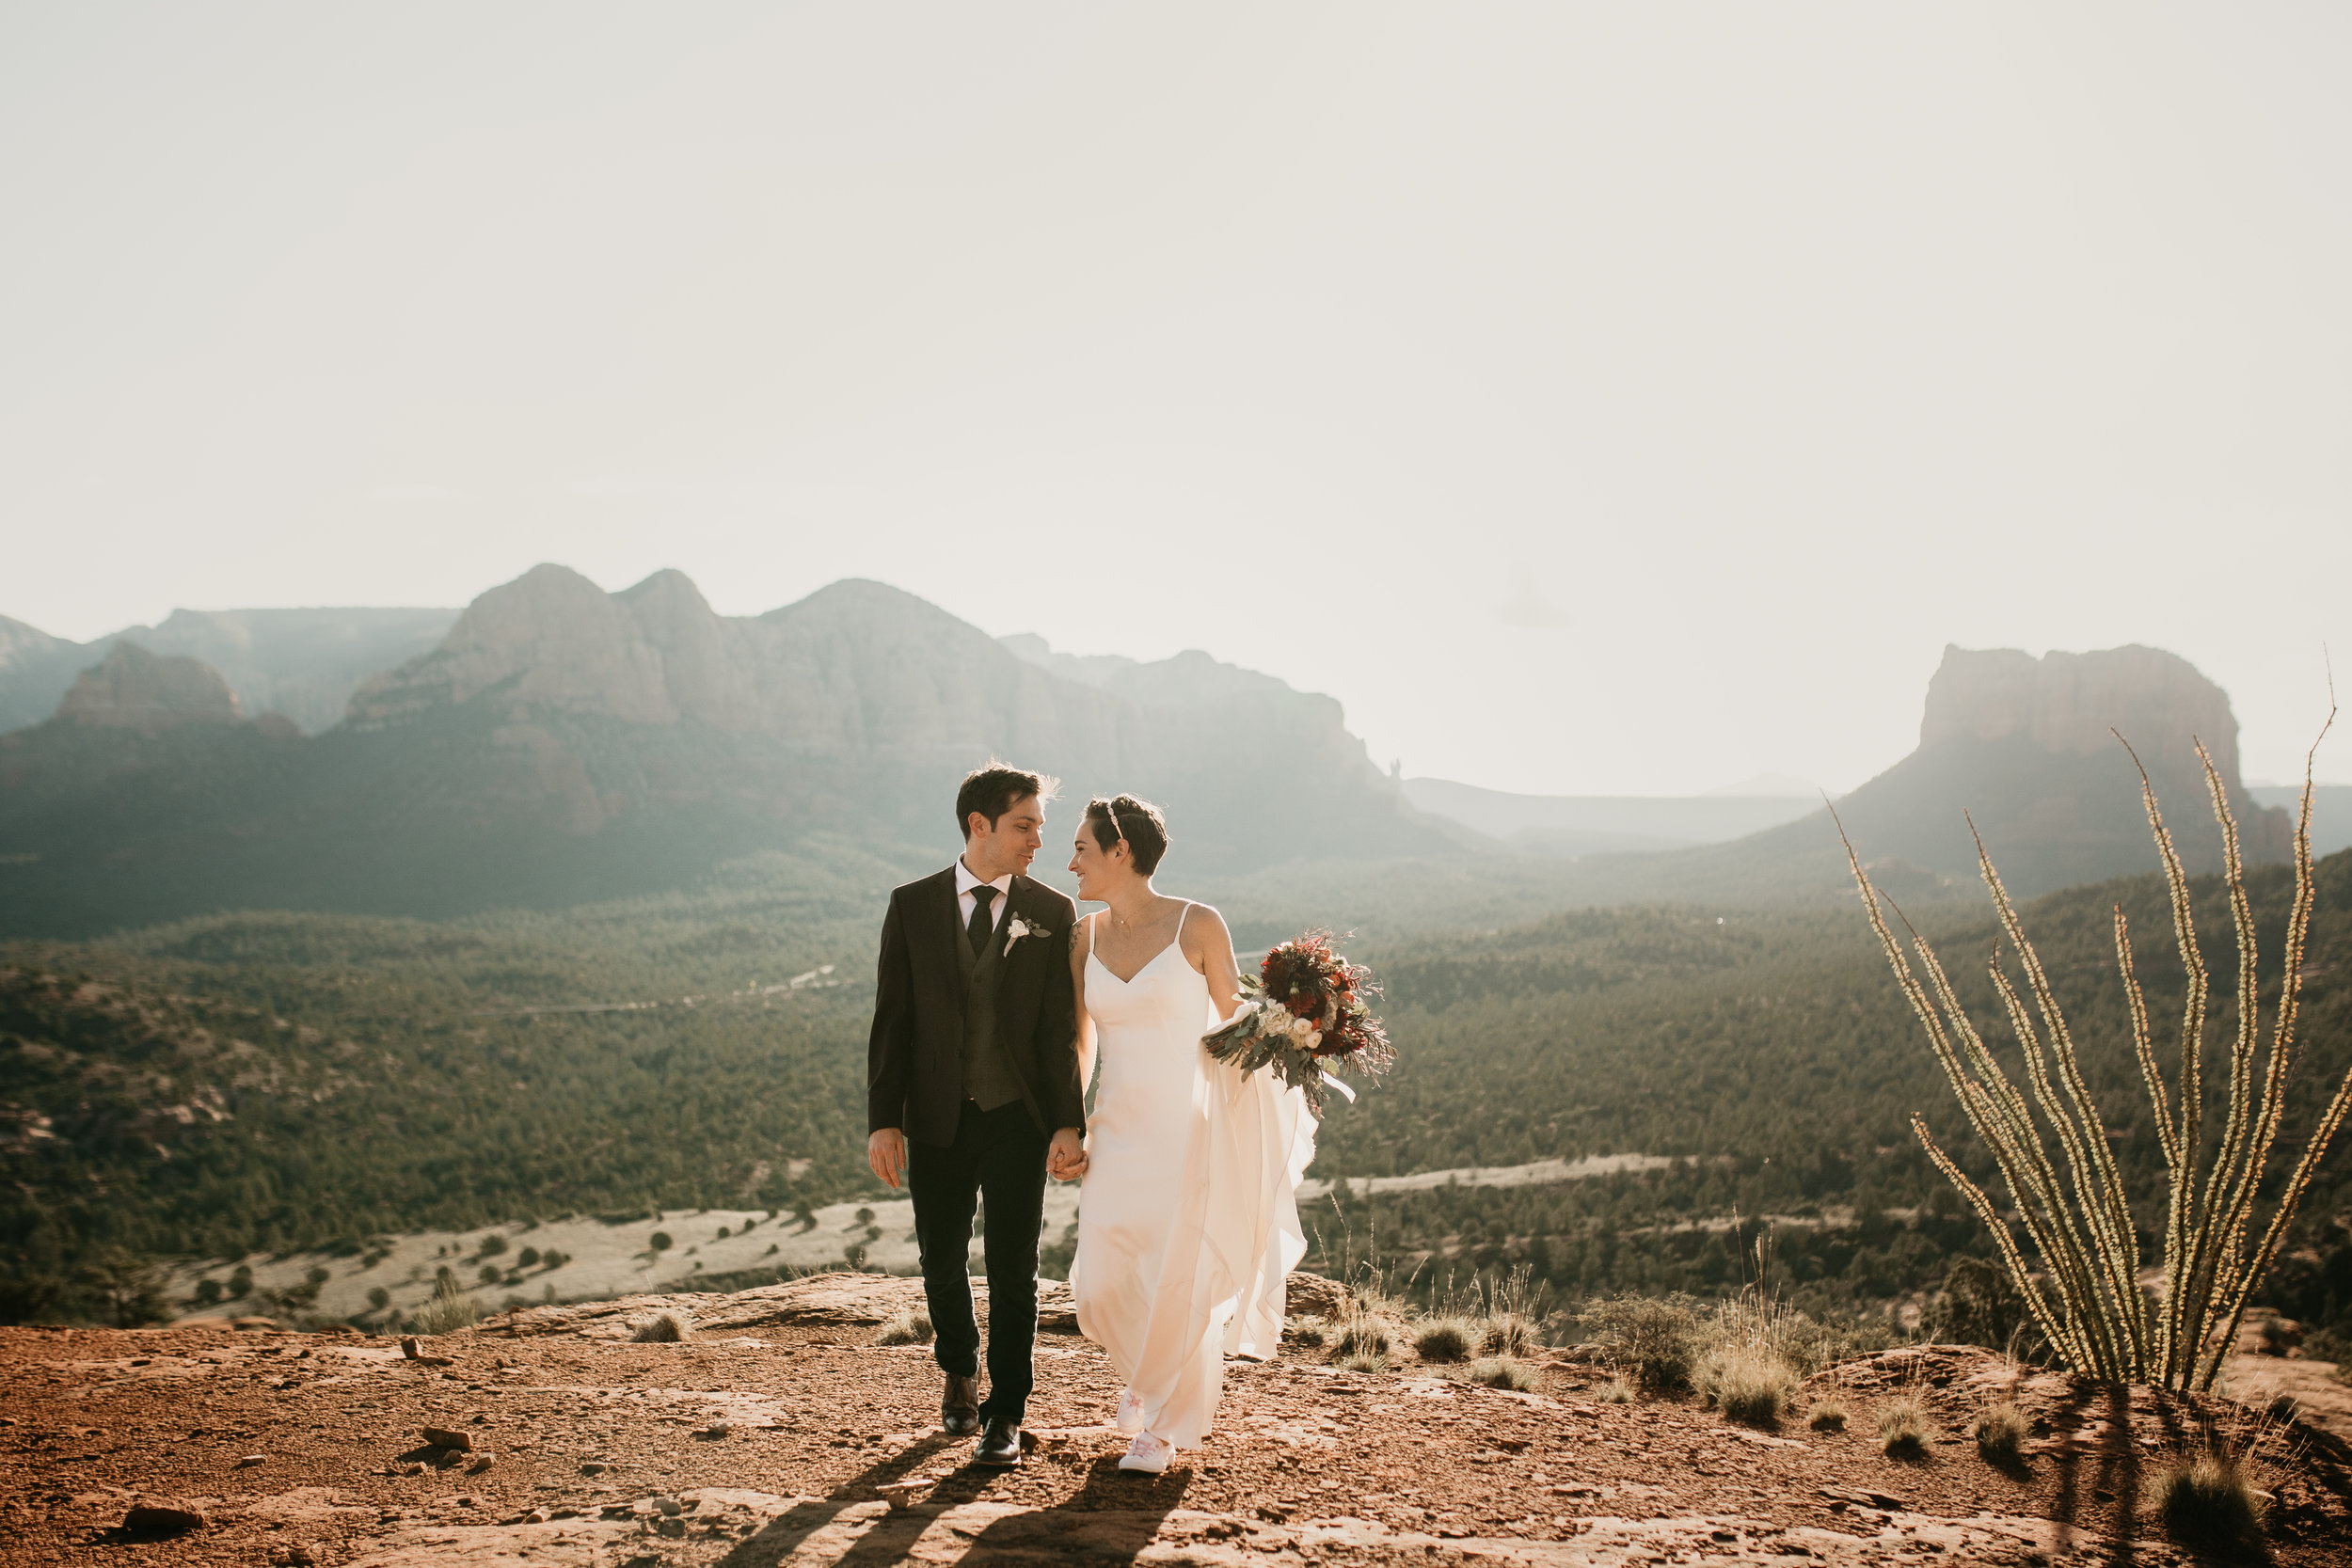 nicole-daacke-photography-sedona-arizona-adventurous-elopement-adventure-elope-photographer-cathedral-rock-sedona-vortex-intimate-wedding-hiking-elopement-photographer-34.jpg